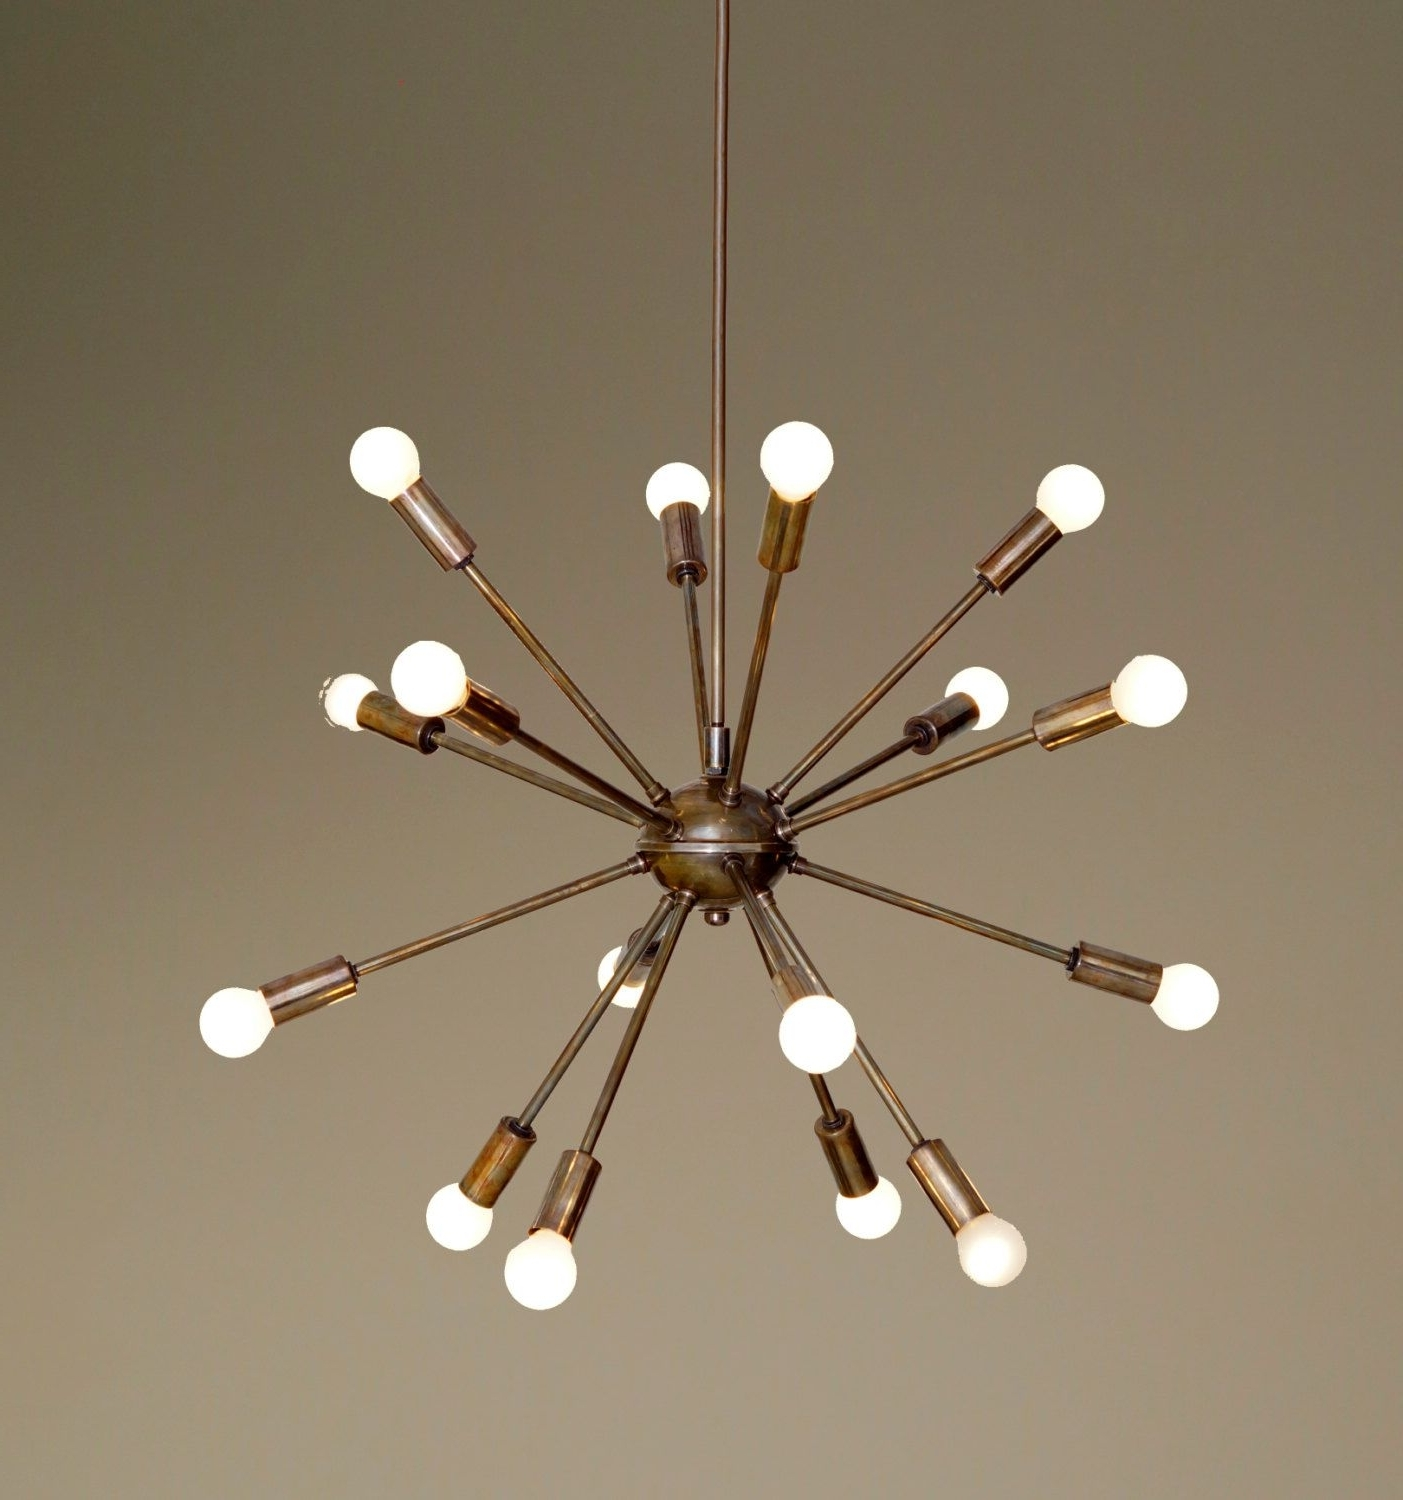 Famous Atom Chandeliers Intended For Mid Century Modern Patina Brass Sputnik Chandelier – 16 Arms Sputnik (View 13 of 20)